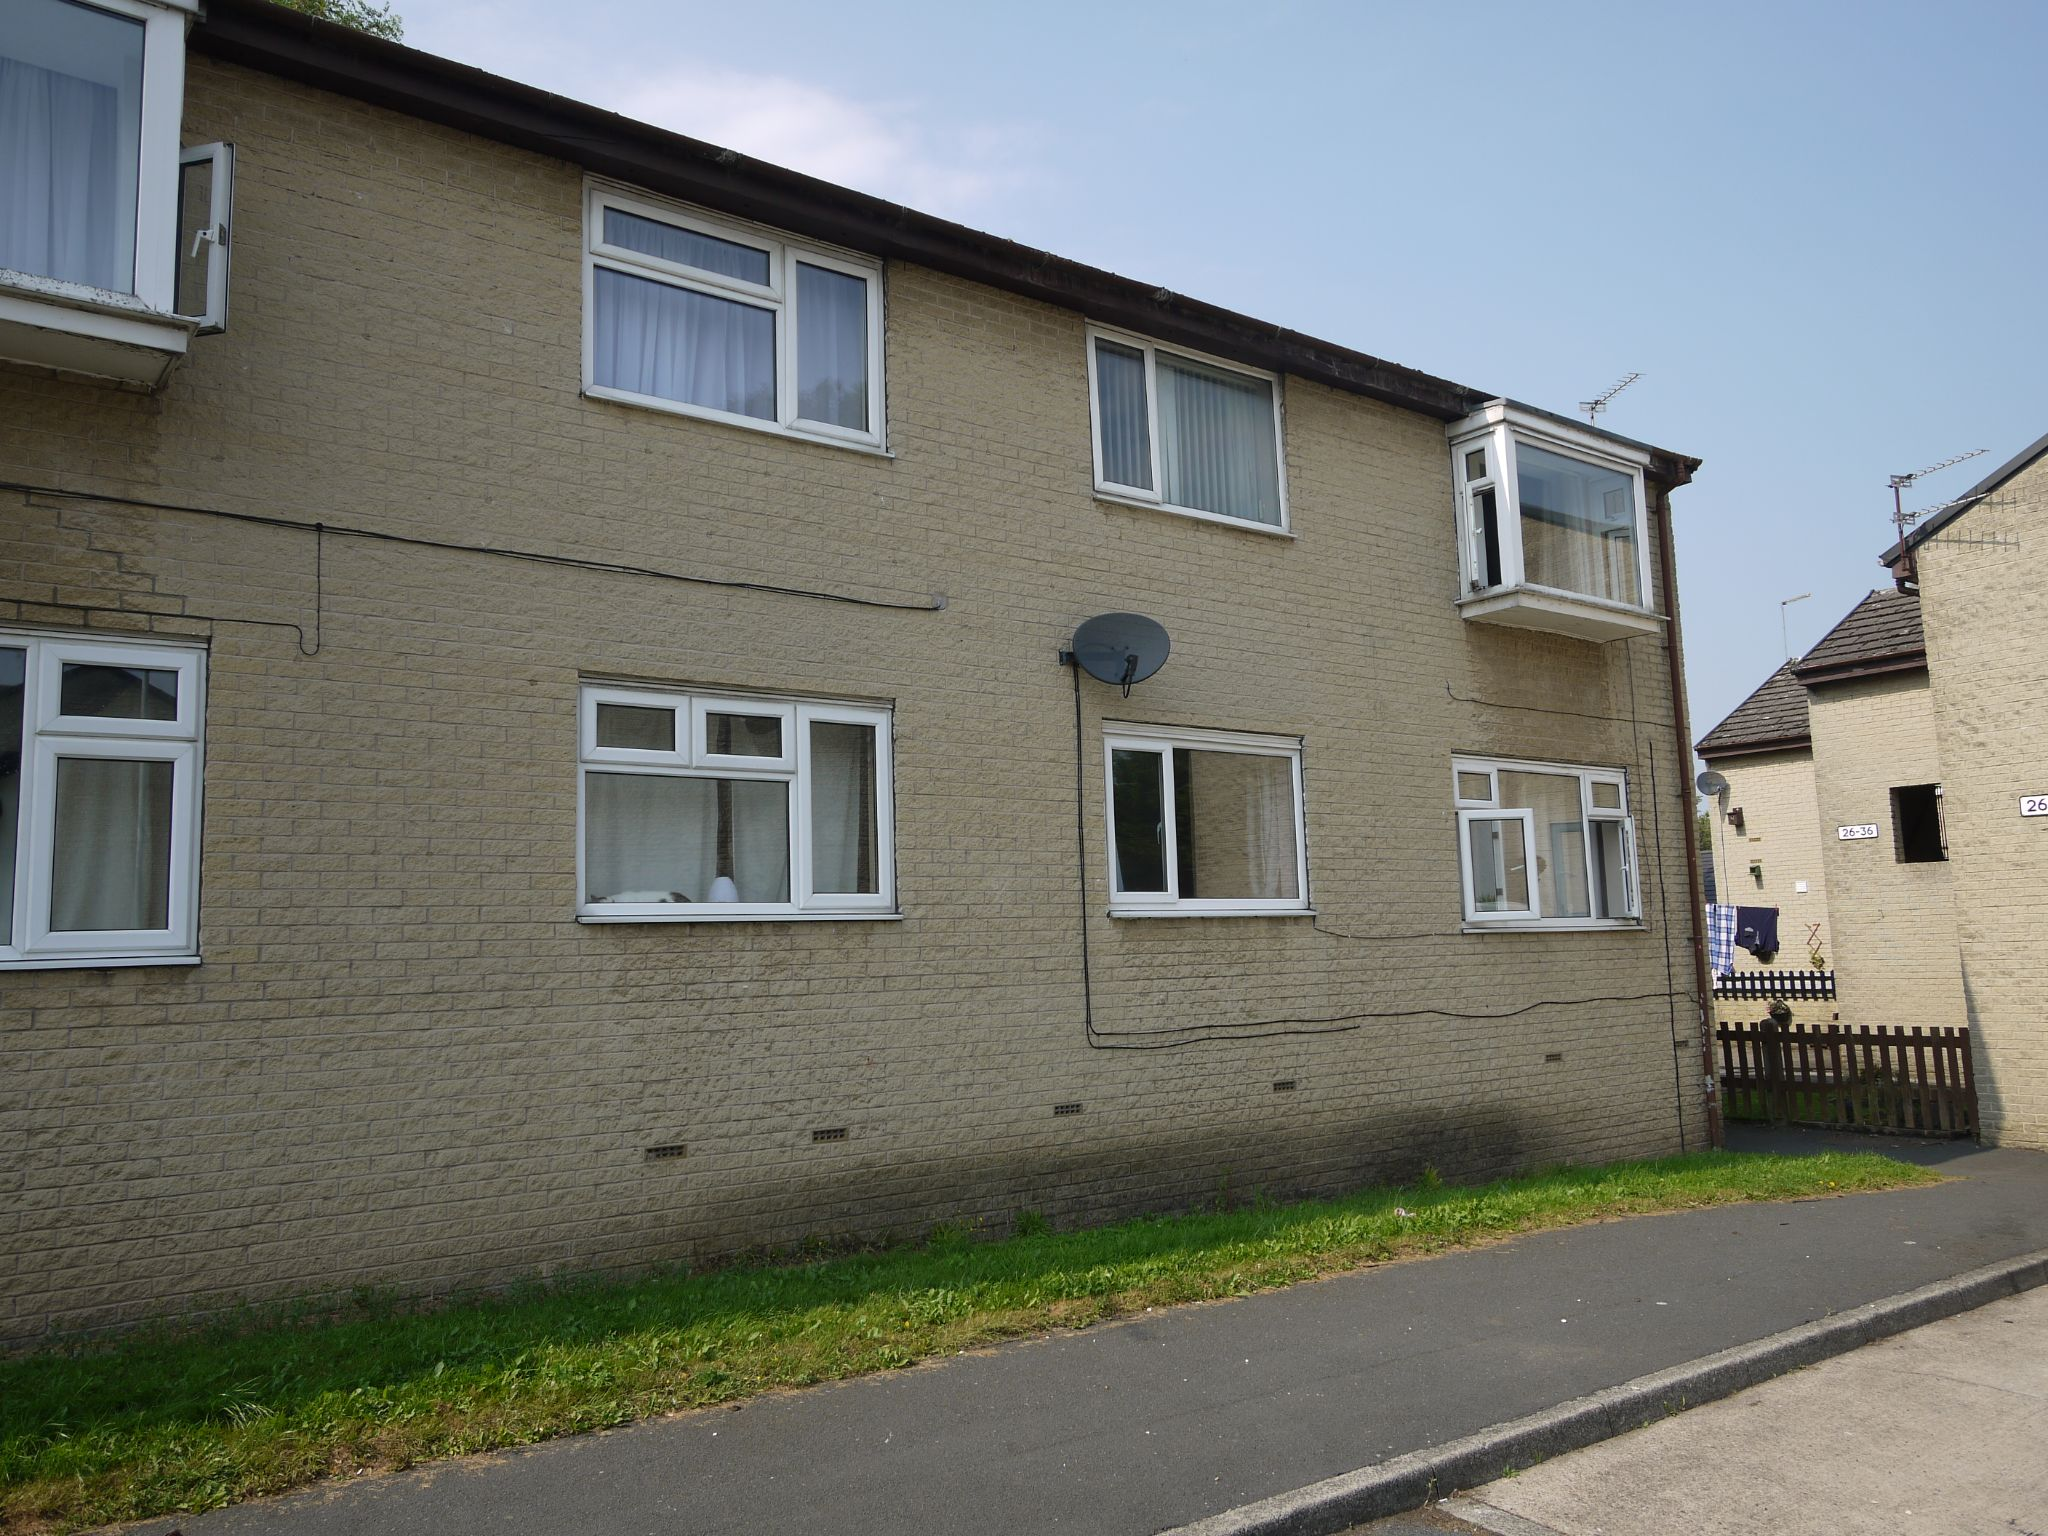 1 bedroom flat flat/apartment SSTC in Brighouse - Main.